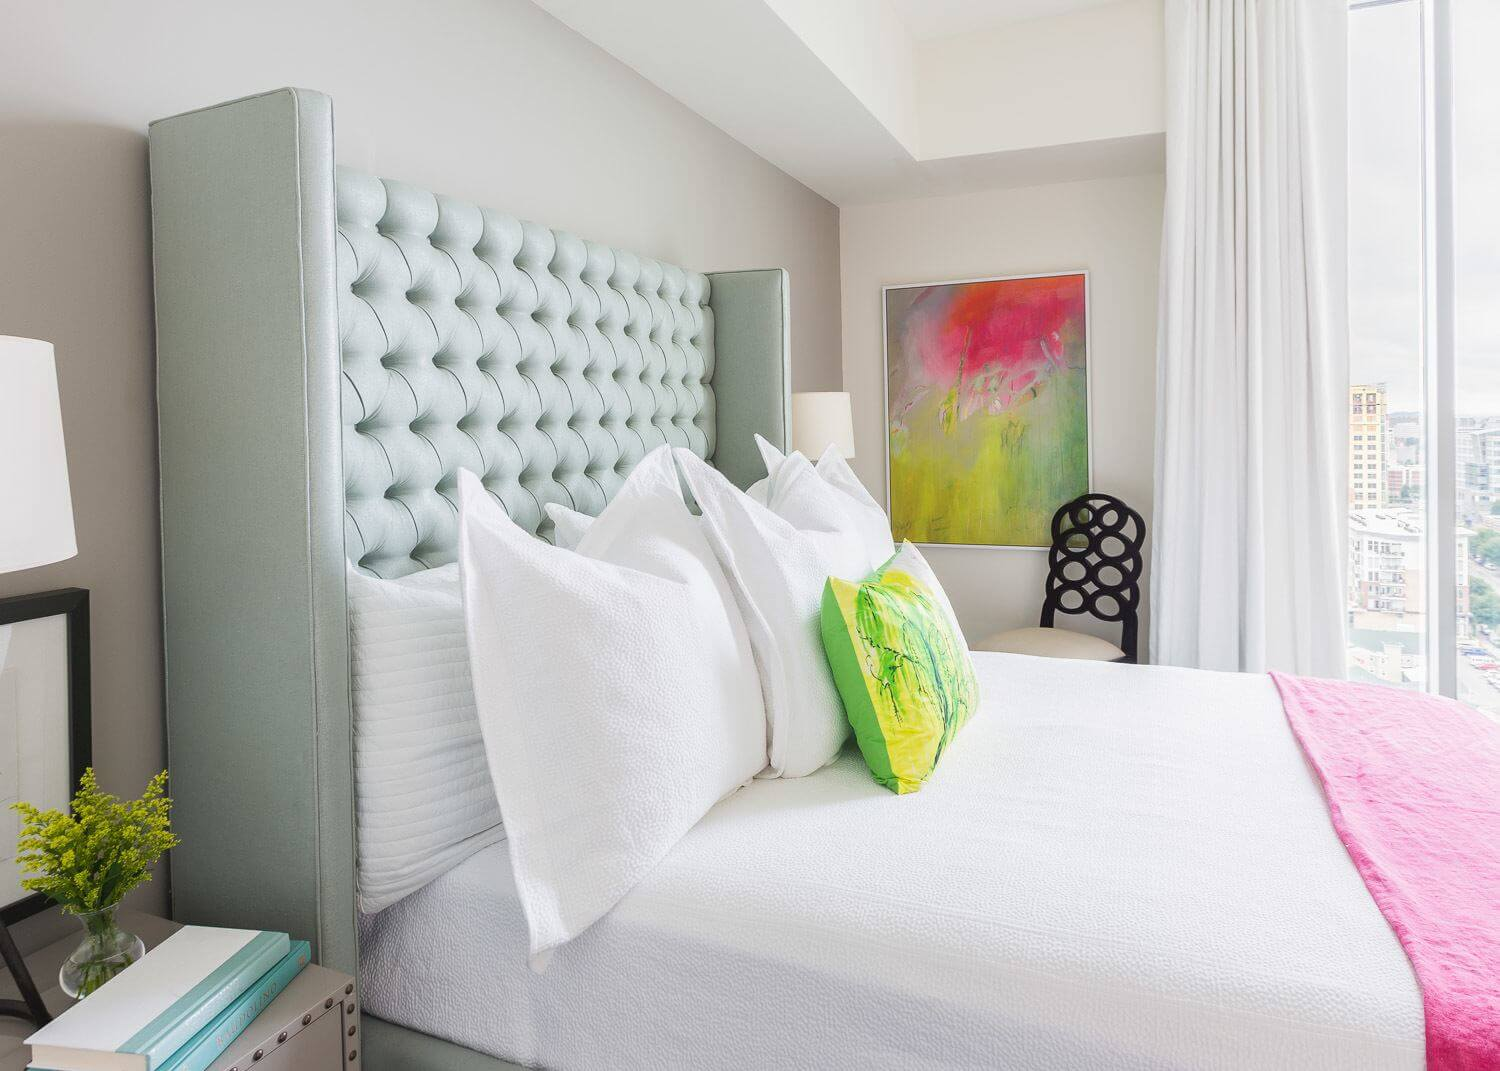 The artwork on the bedroom's wall ties in the colors of the headboard, pillow and throw. ©Alyssa Rosenheck Photography